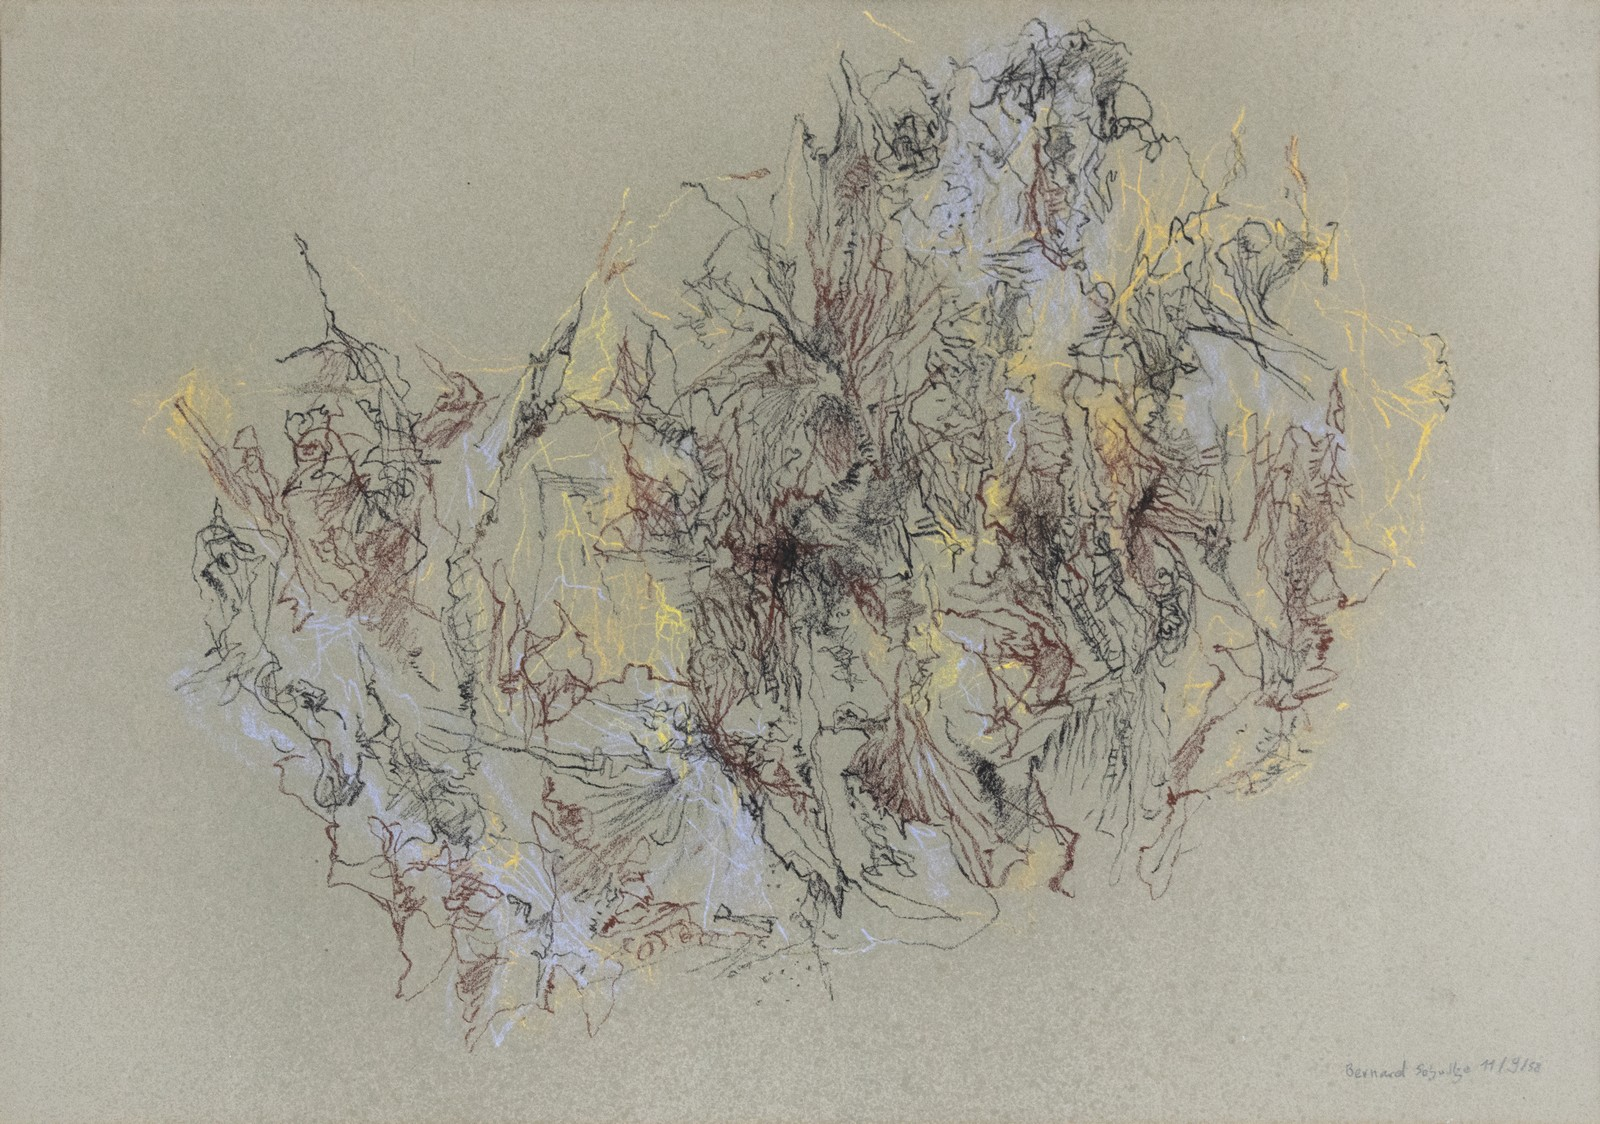 1958, chalk on paper, 44,5 x 59,8 cm